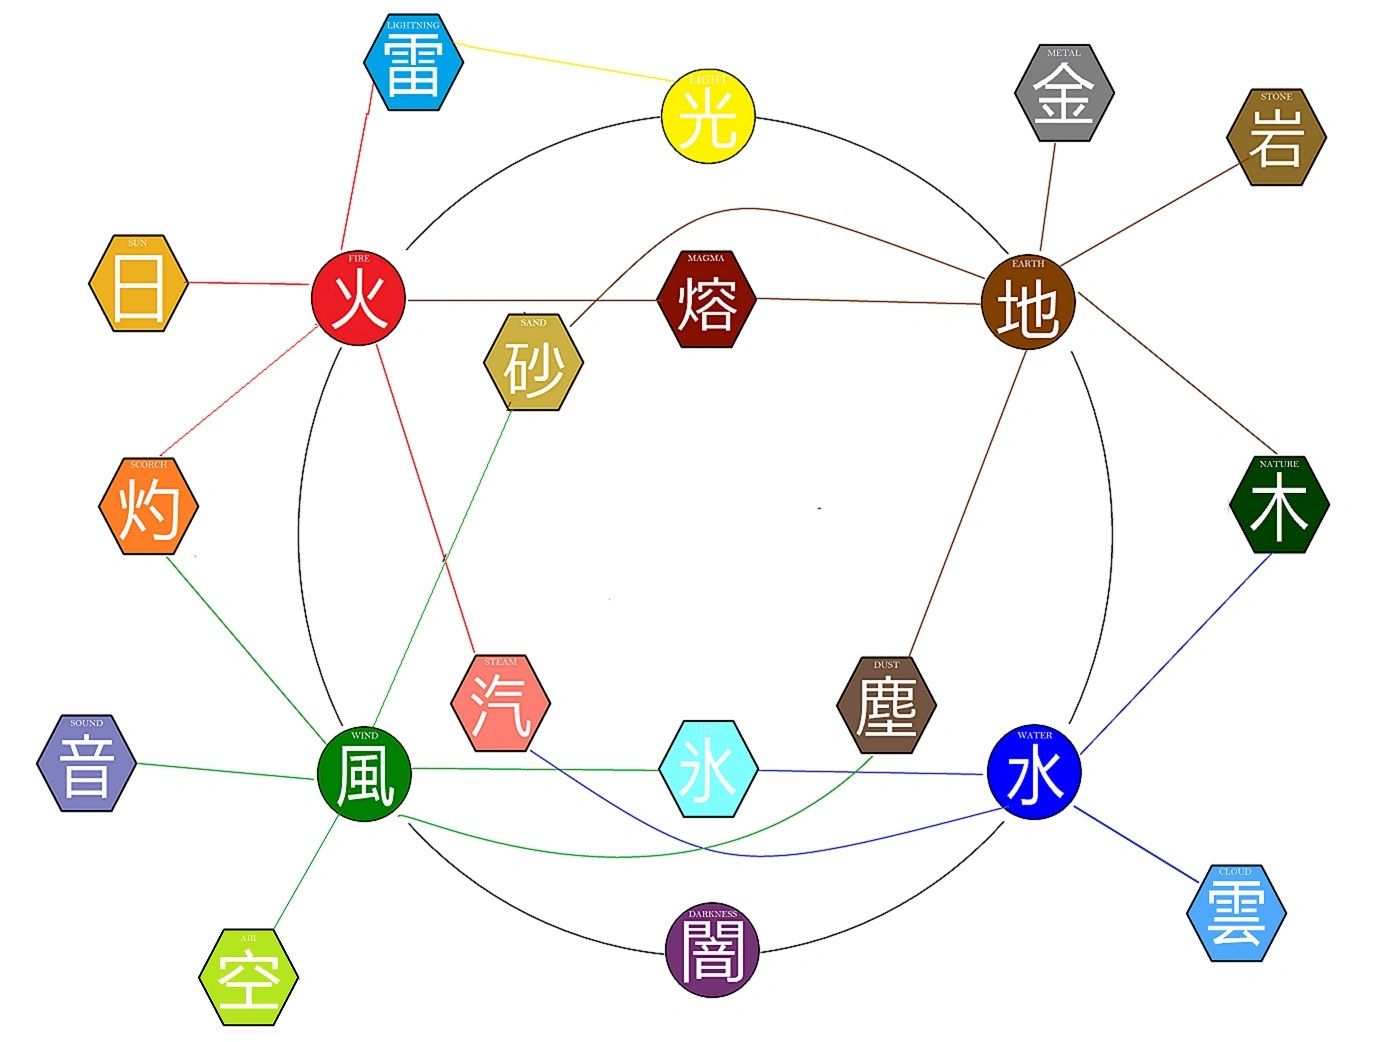 Elements elemental chart also bending sword art online fanon wiki fandom powered by rh saofanona